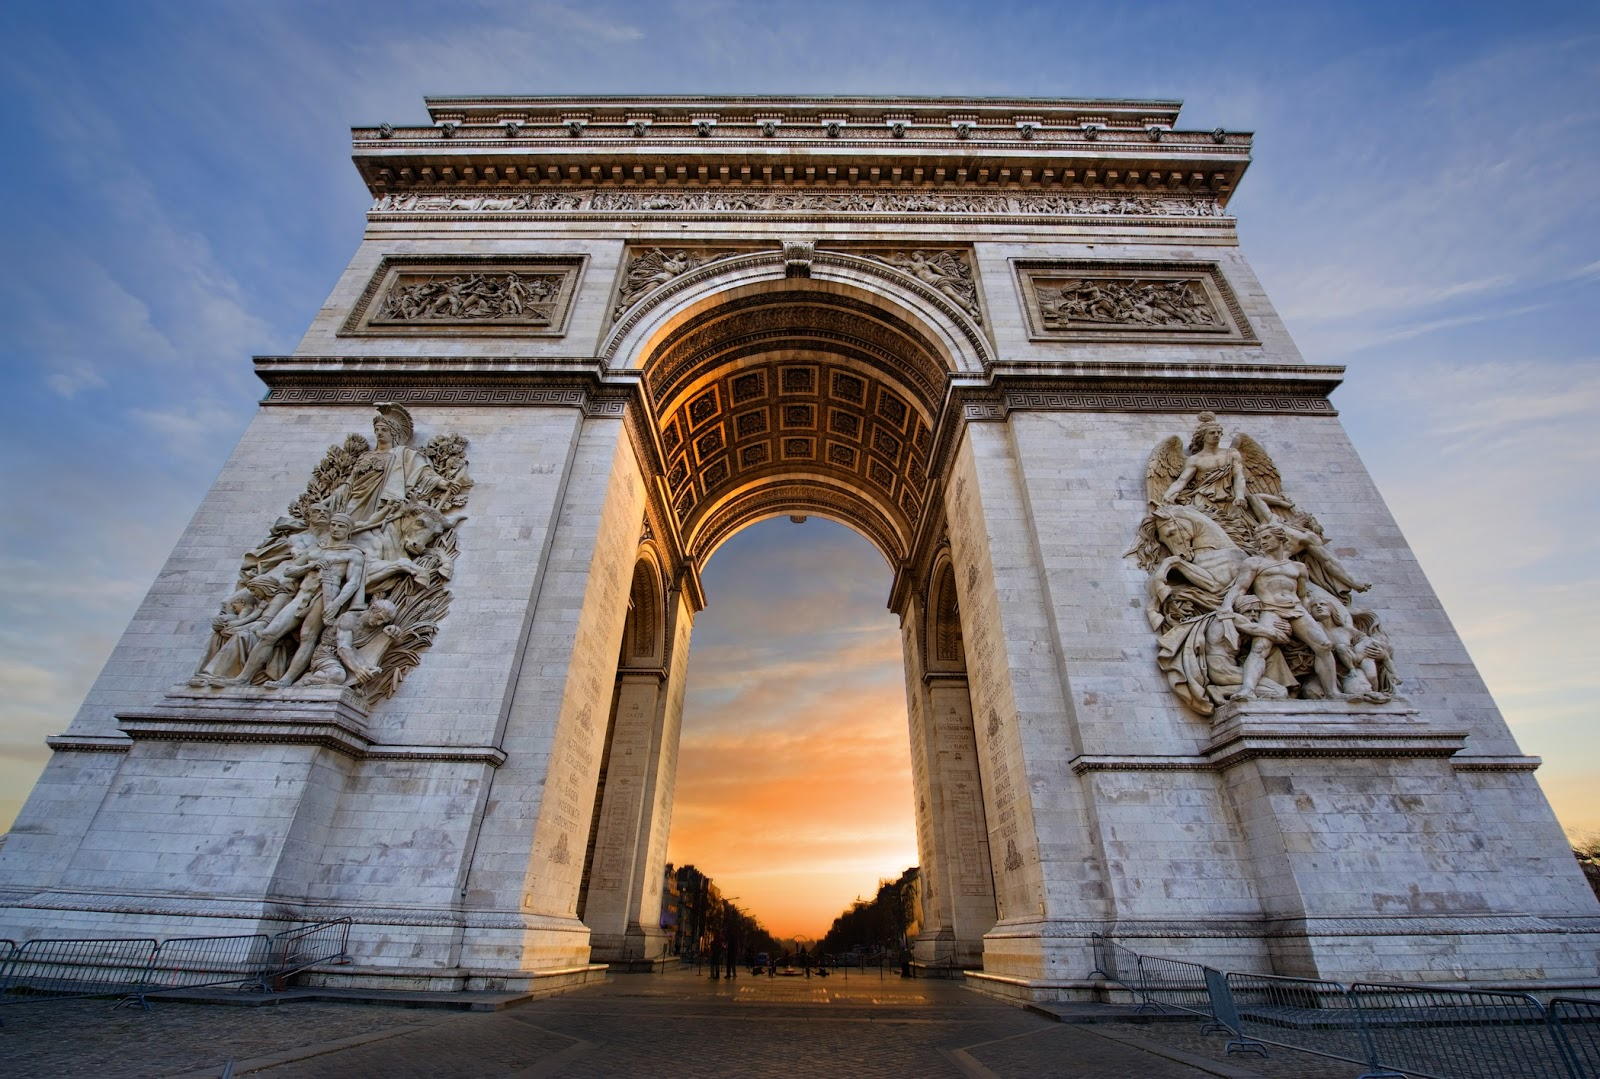 arc de triomphe paris 1806 1836 tutt 39 art pittura scultura poesia musica. Black Bedroom Furniture Sets. Home Design Ideas